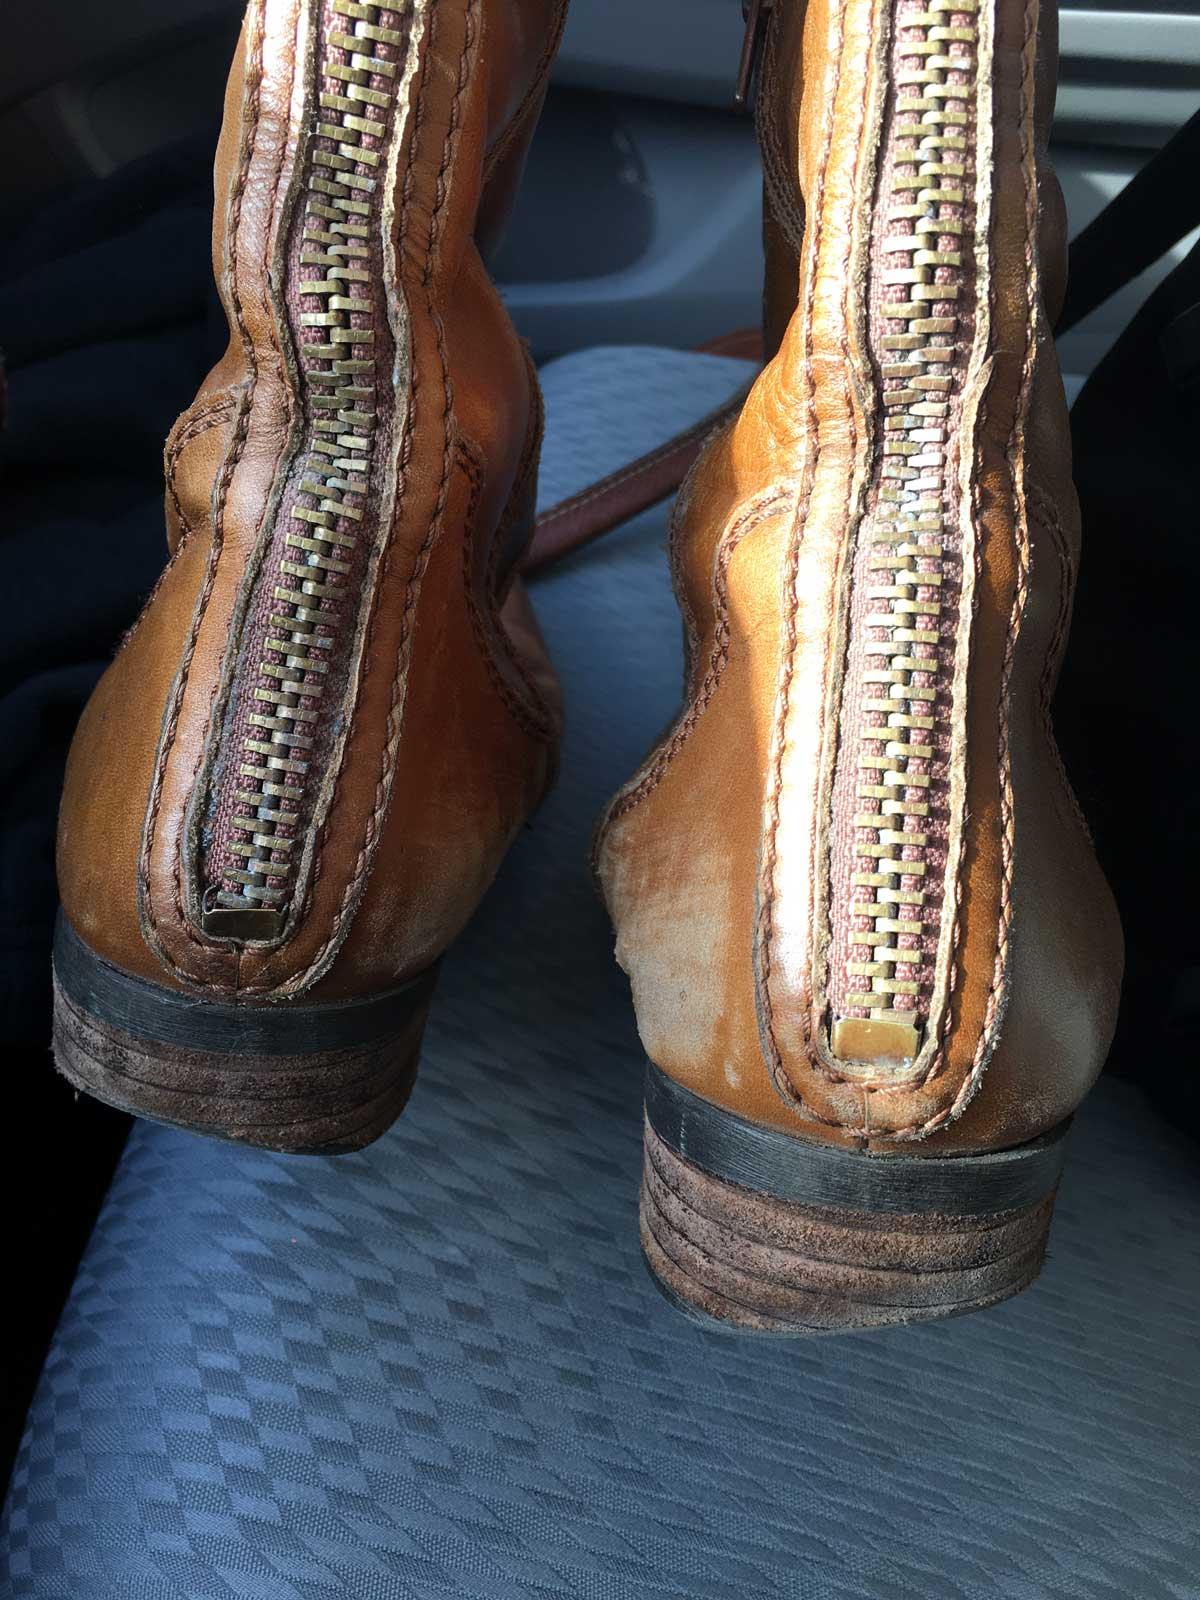 Boots before repair - the soles are in bad shape